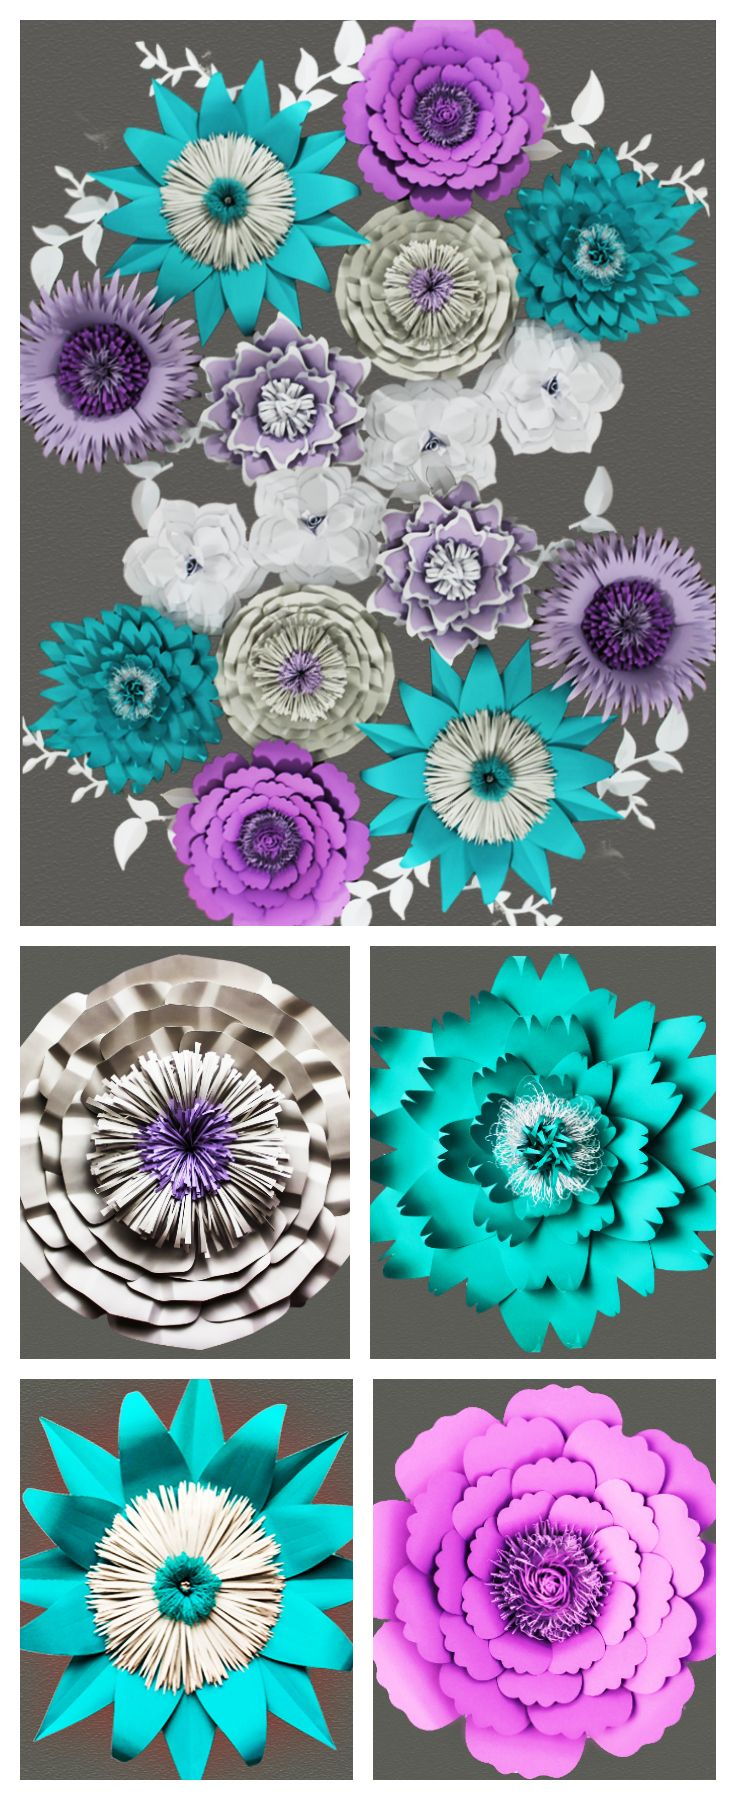 Paper Flower Backdrops continue to be super trendy for wedding decor